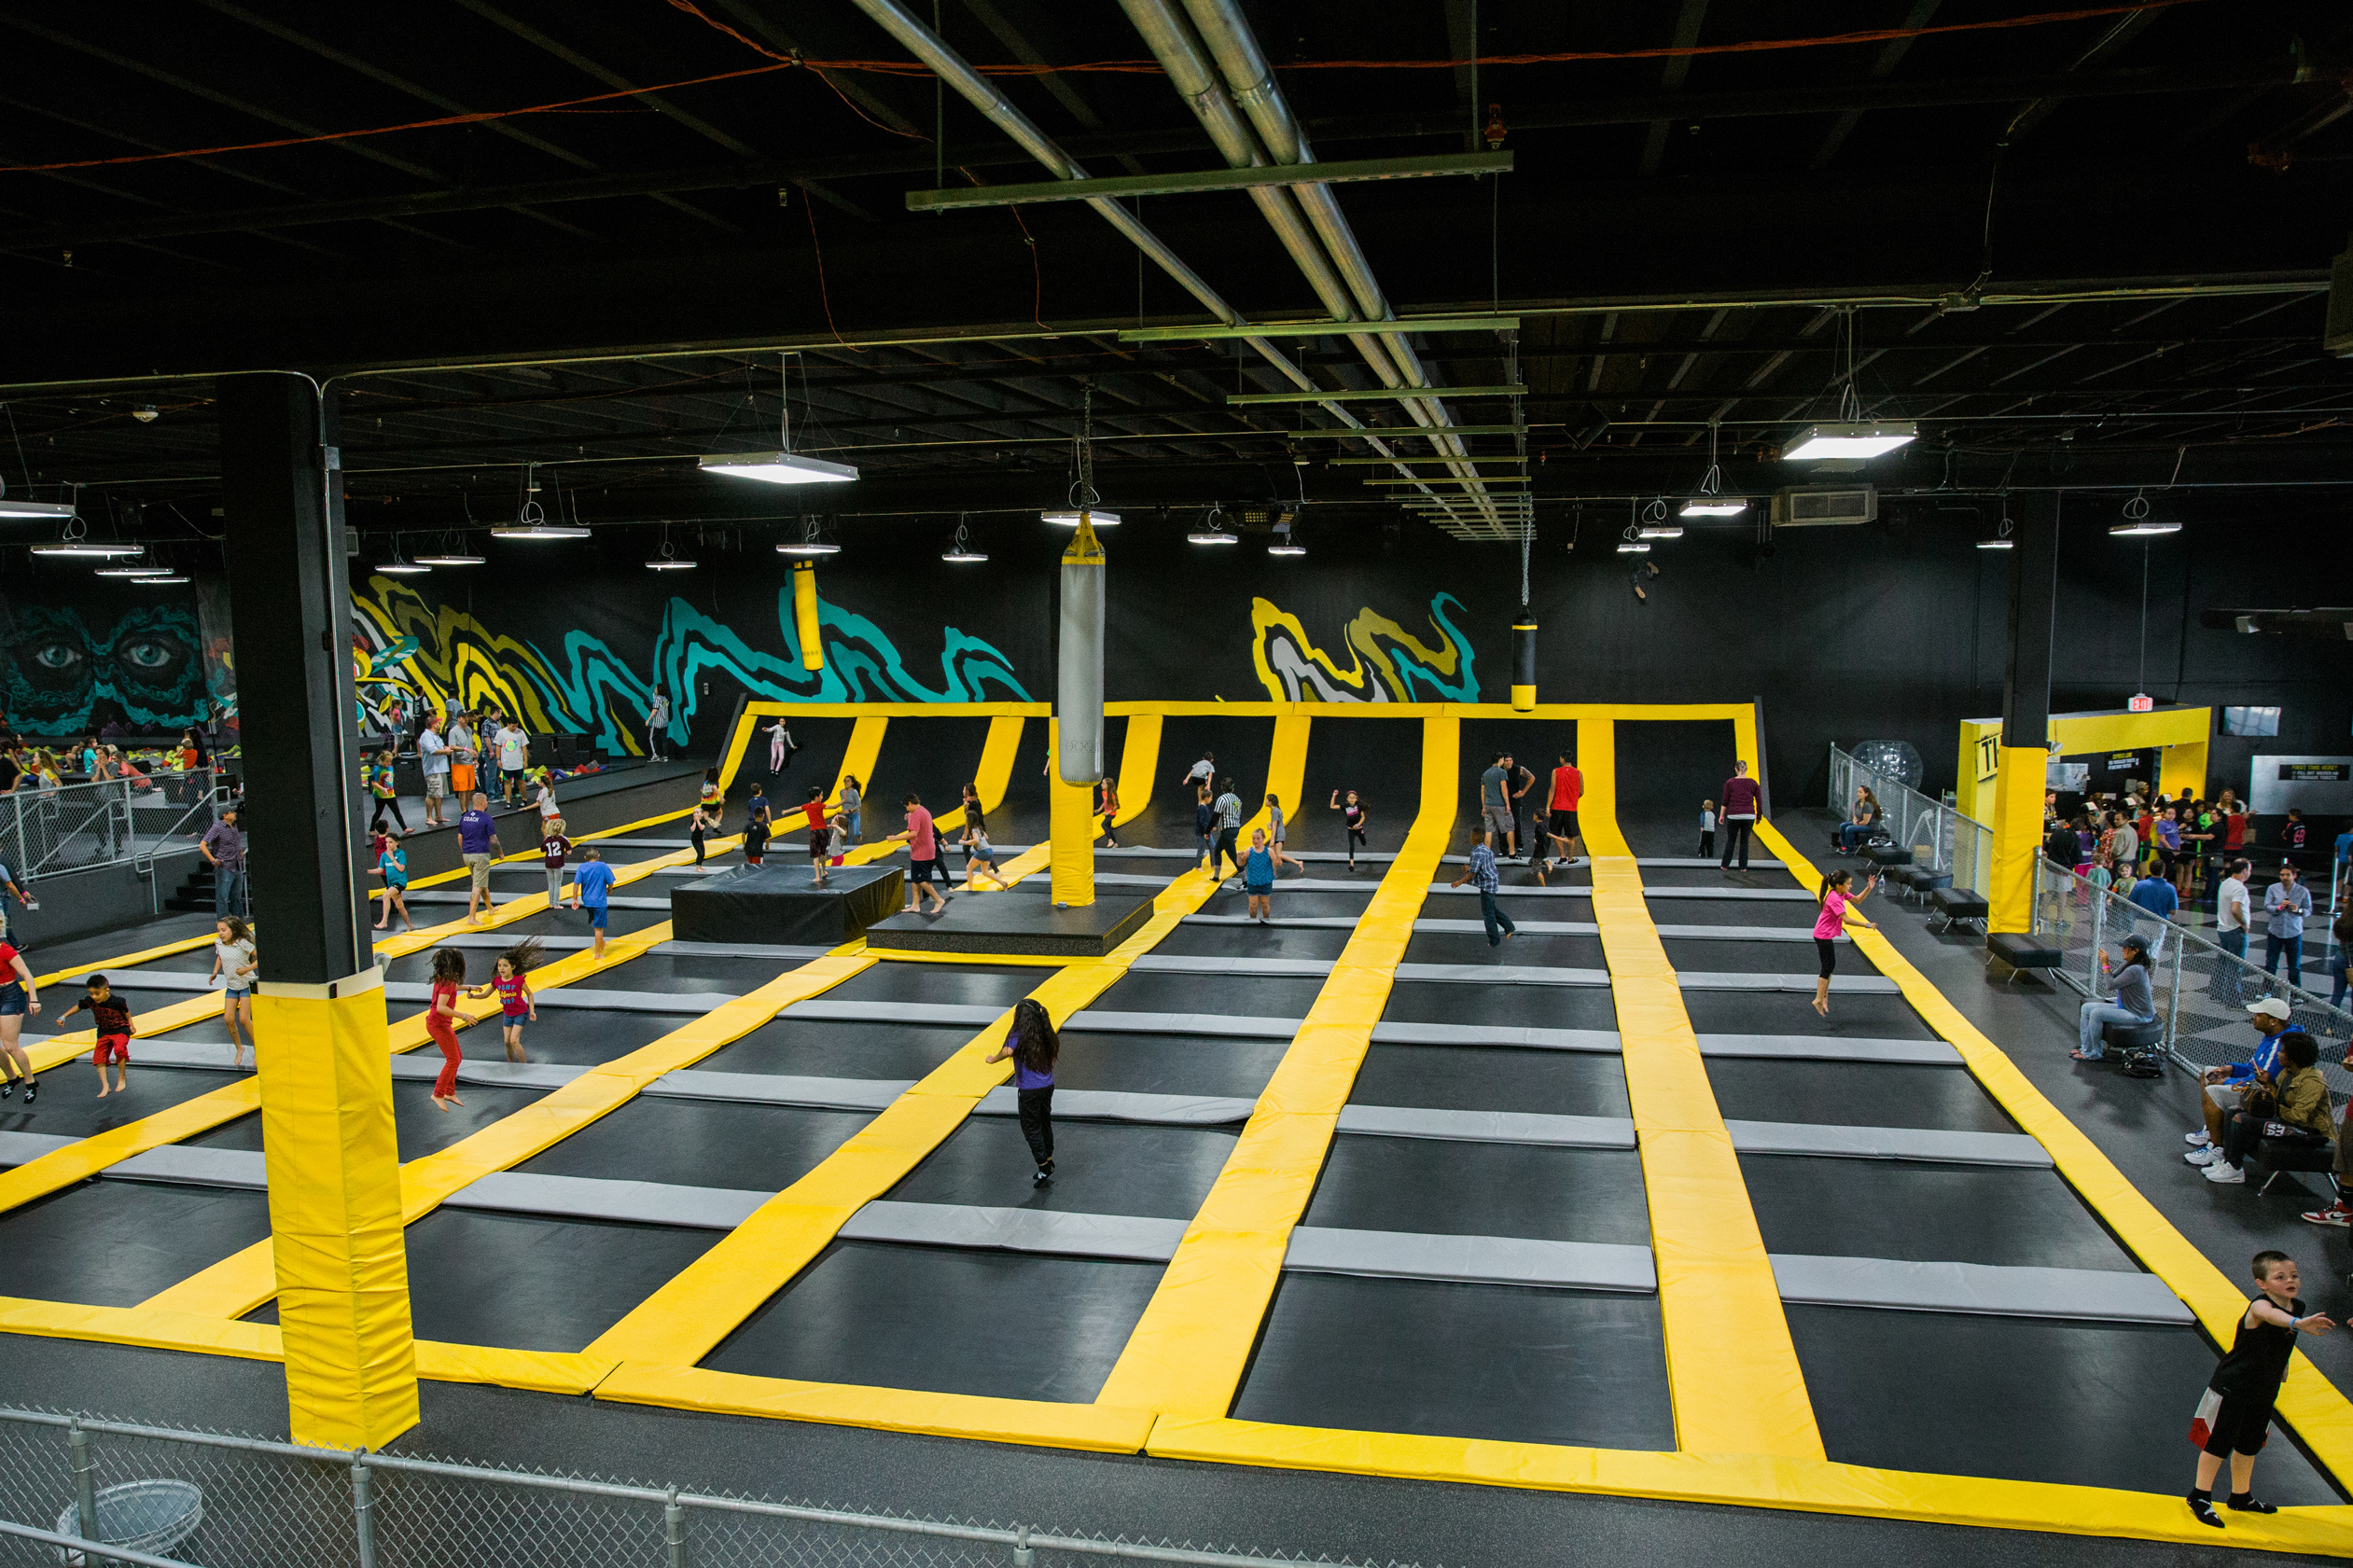 A Ryze trampoline park, one of which will soon be coming to Dundee.